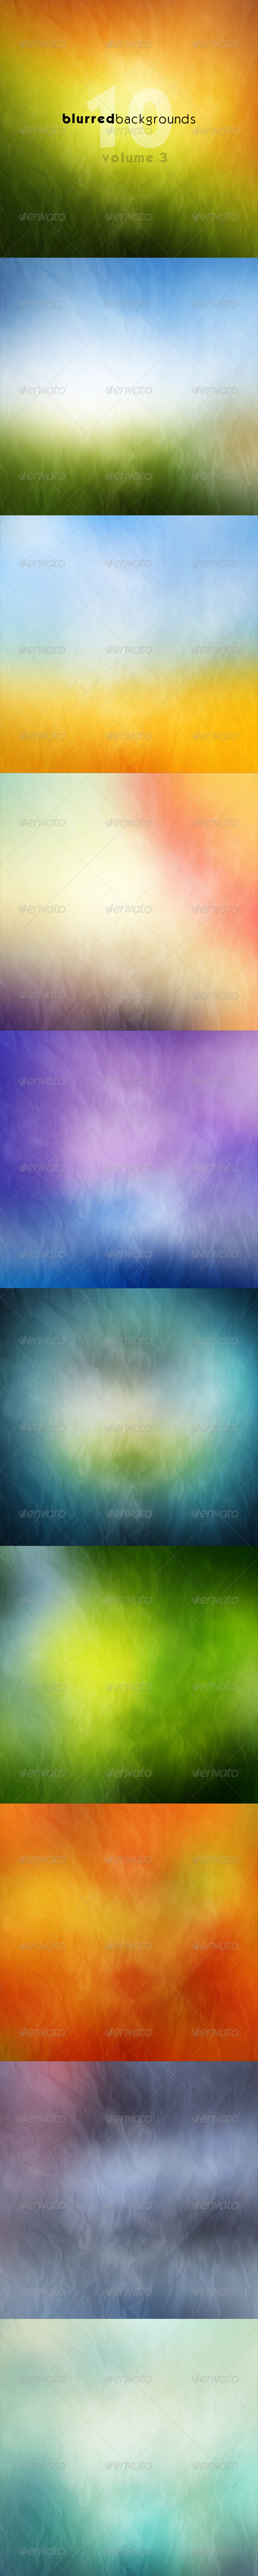 GraphicRiver Blurred Backgrounds Vol 3 7520582